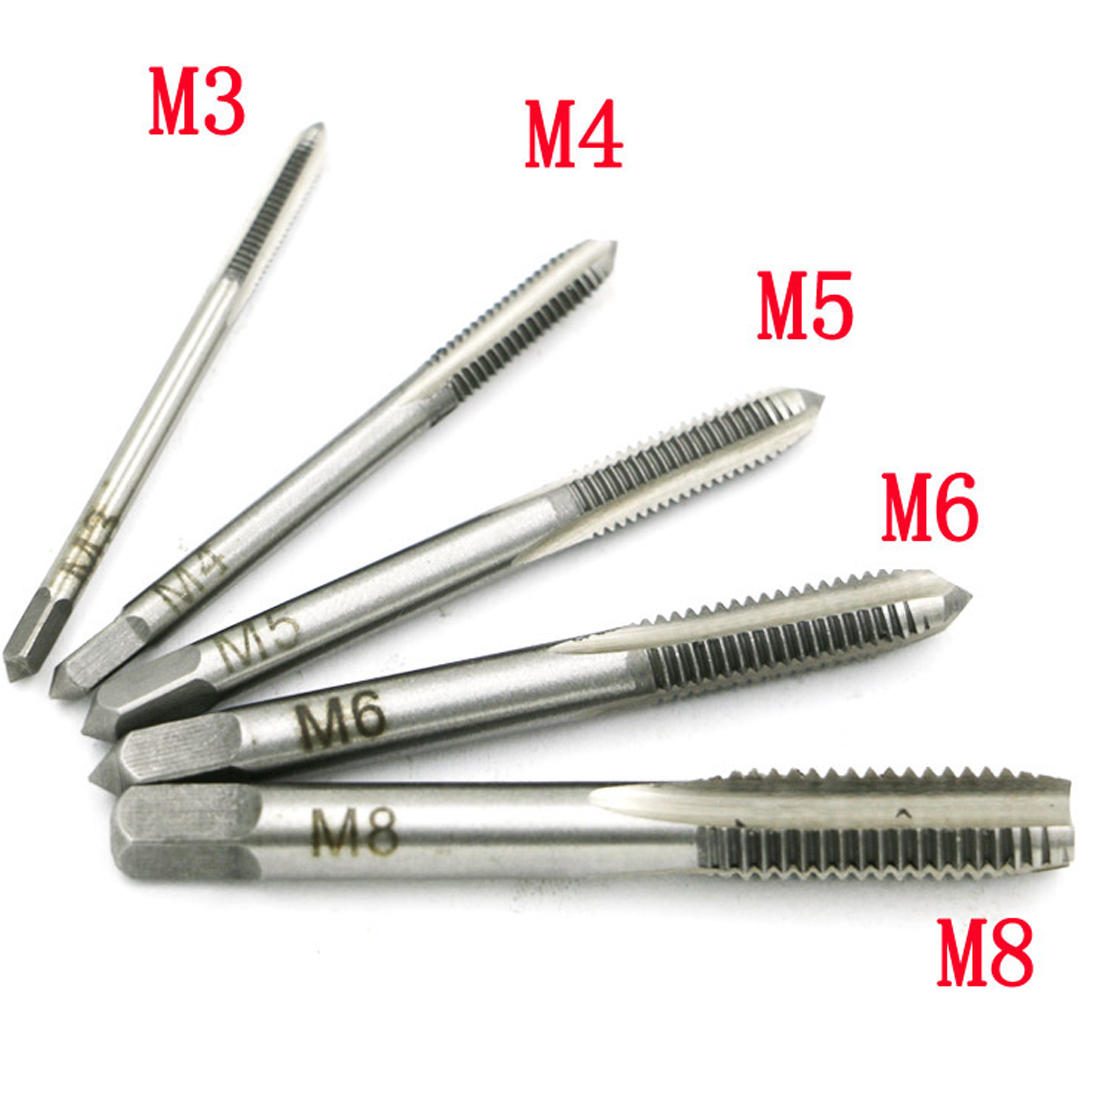 High Quality 5PCS/Set HSS M3 M4 M5 M6 M8 Machine Spiral Point Straight Fluted Screw Thread Hand Tap Drill pegasi high quality 5pcs 50 sizes hss